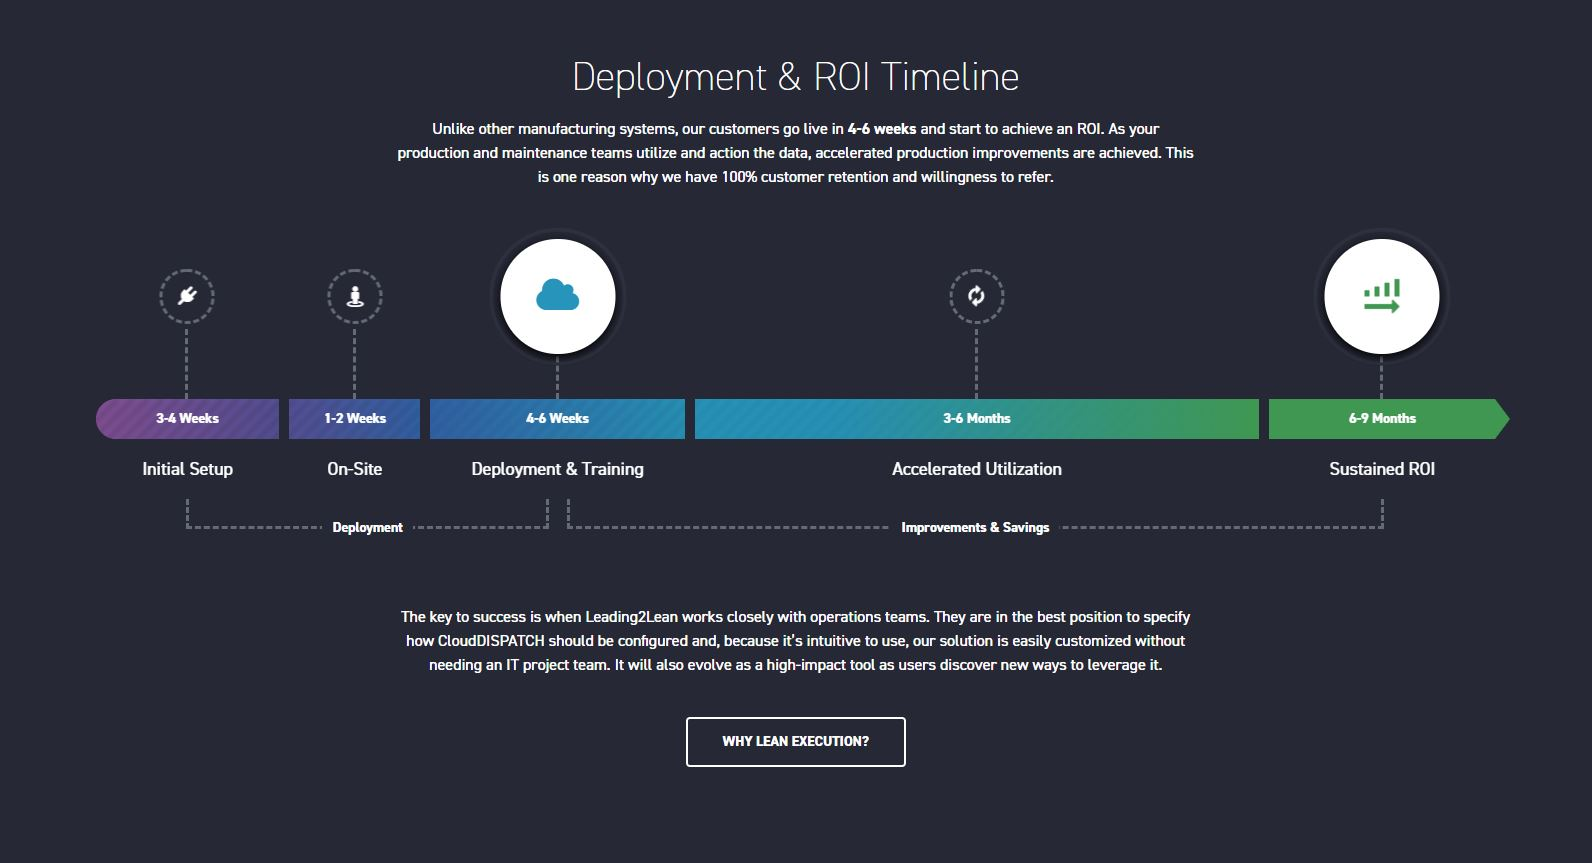 What is CRM and why do I need it_deployment and ROI timeline